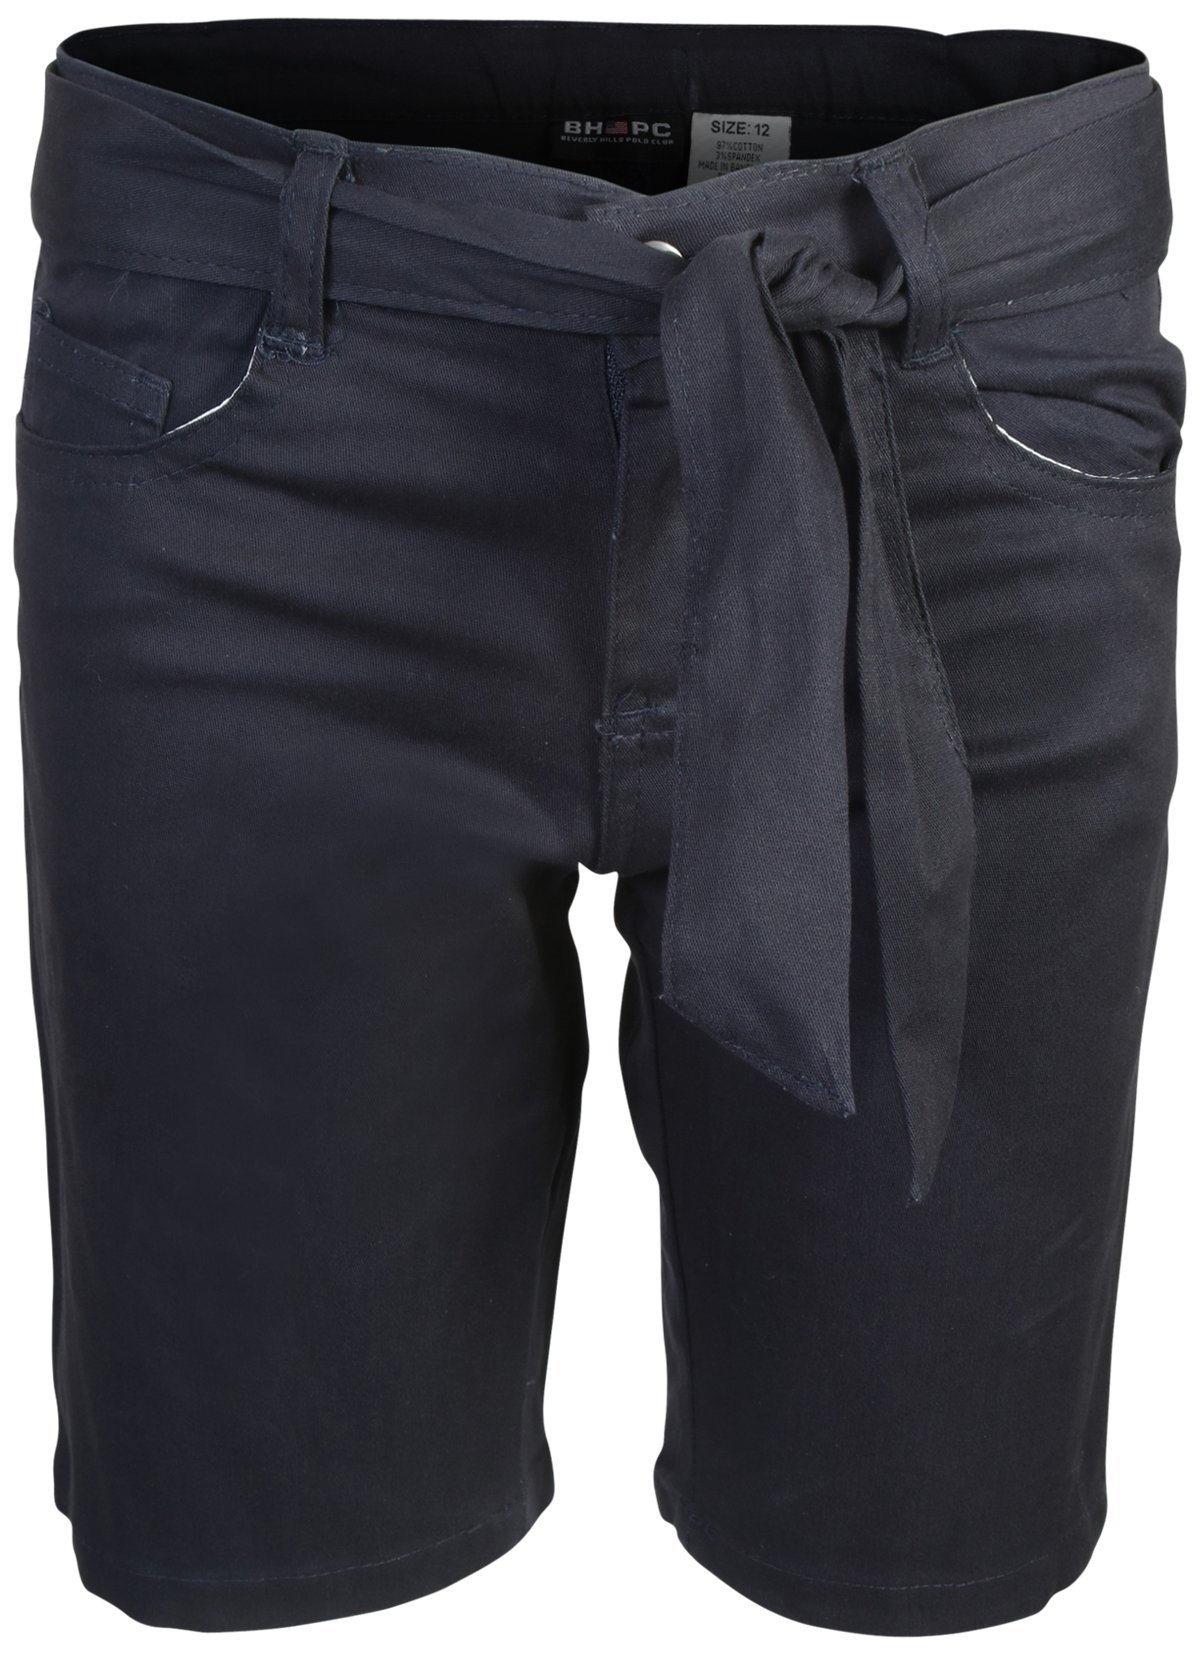 Beverly Hills Polo Club Girls School Uniform Belted Bermuda Shorts, Navy, Size 10' by Beverly Hills Polo Club (Image #2)